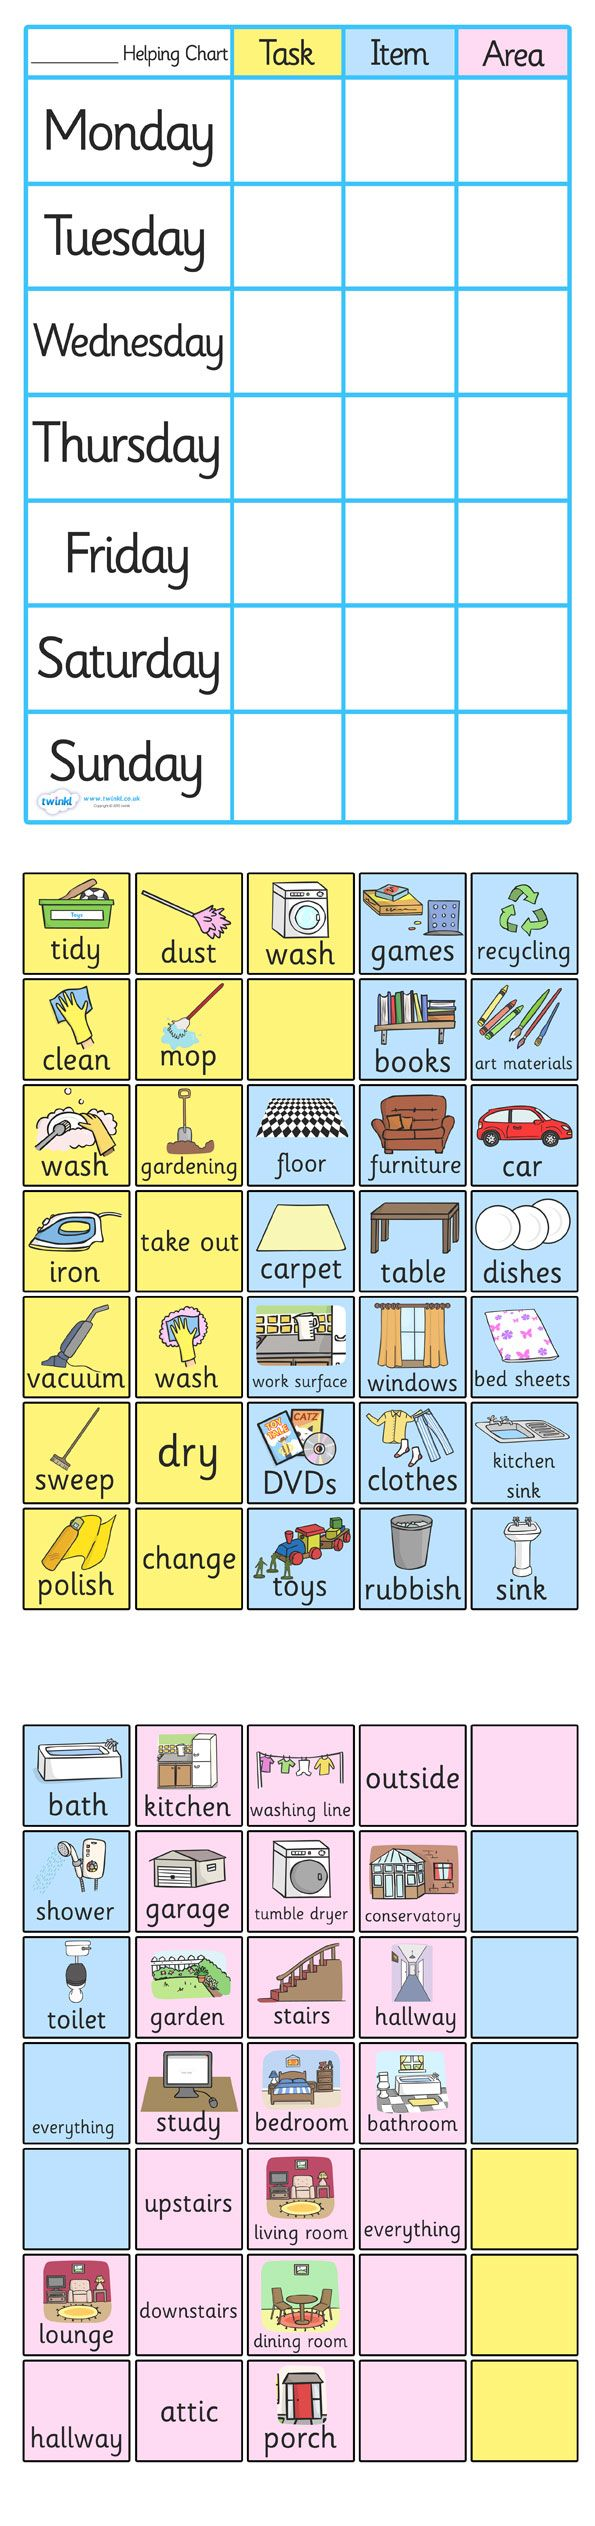 Twinkl Resources >> Chpre Chart For Home  >> Thousands of printable primary teaching resources for EYFS, KS1, KS2 and beyond! chore chart, home use, home school, home, help, item, area, tidy, wash, bedroom, bathroom, cleaning